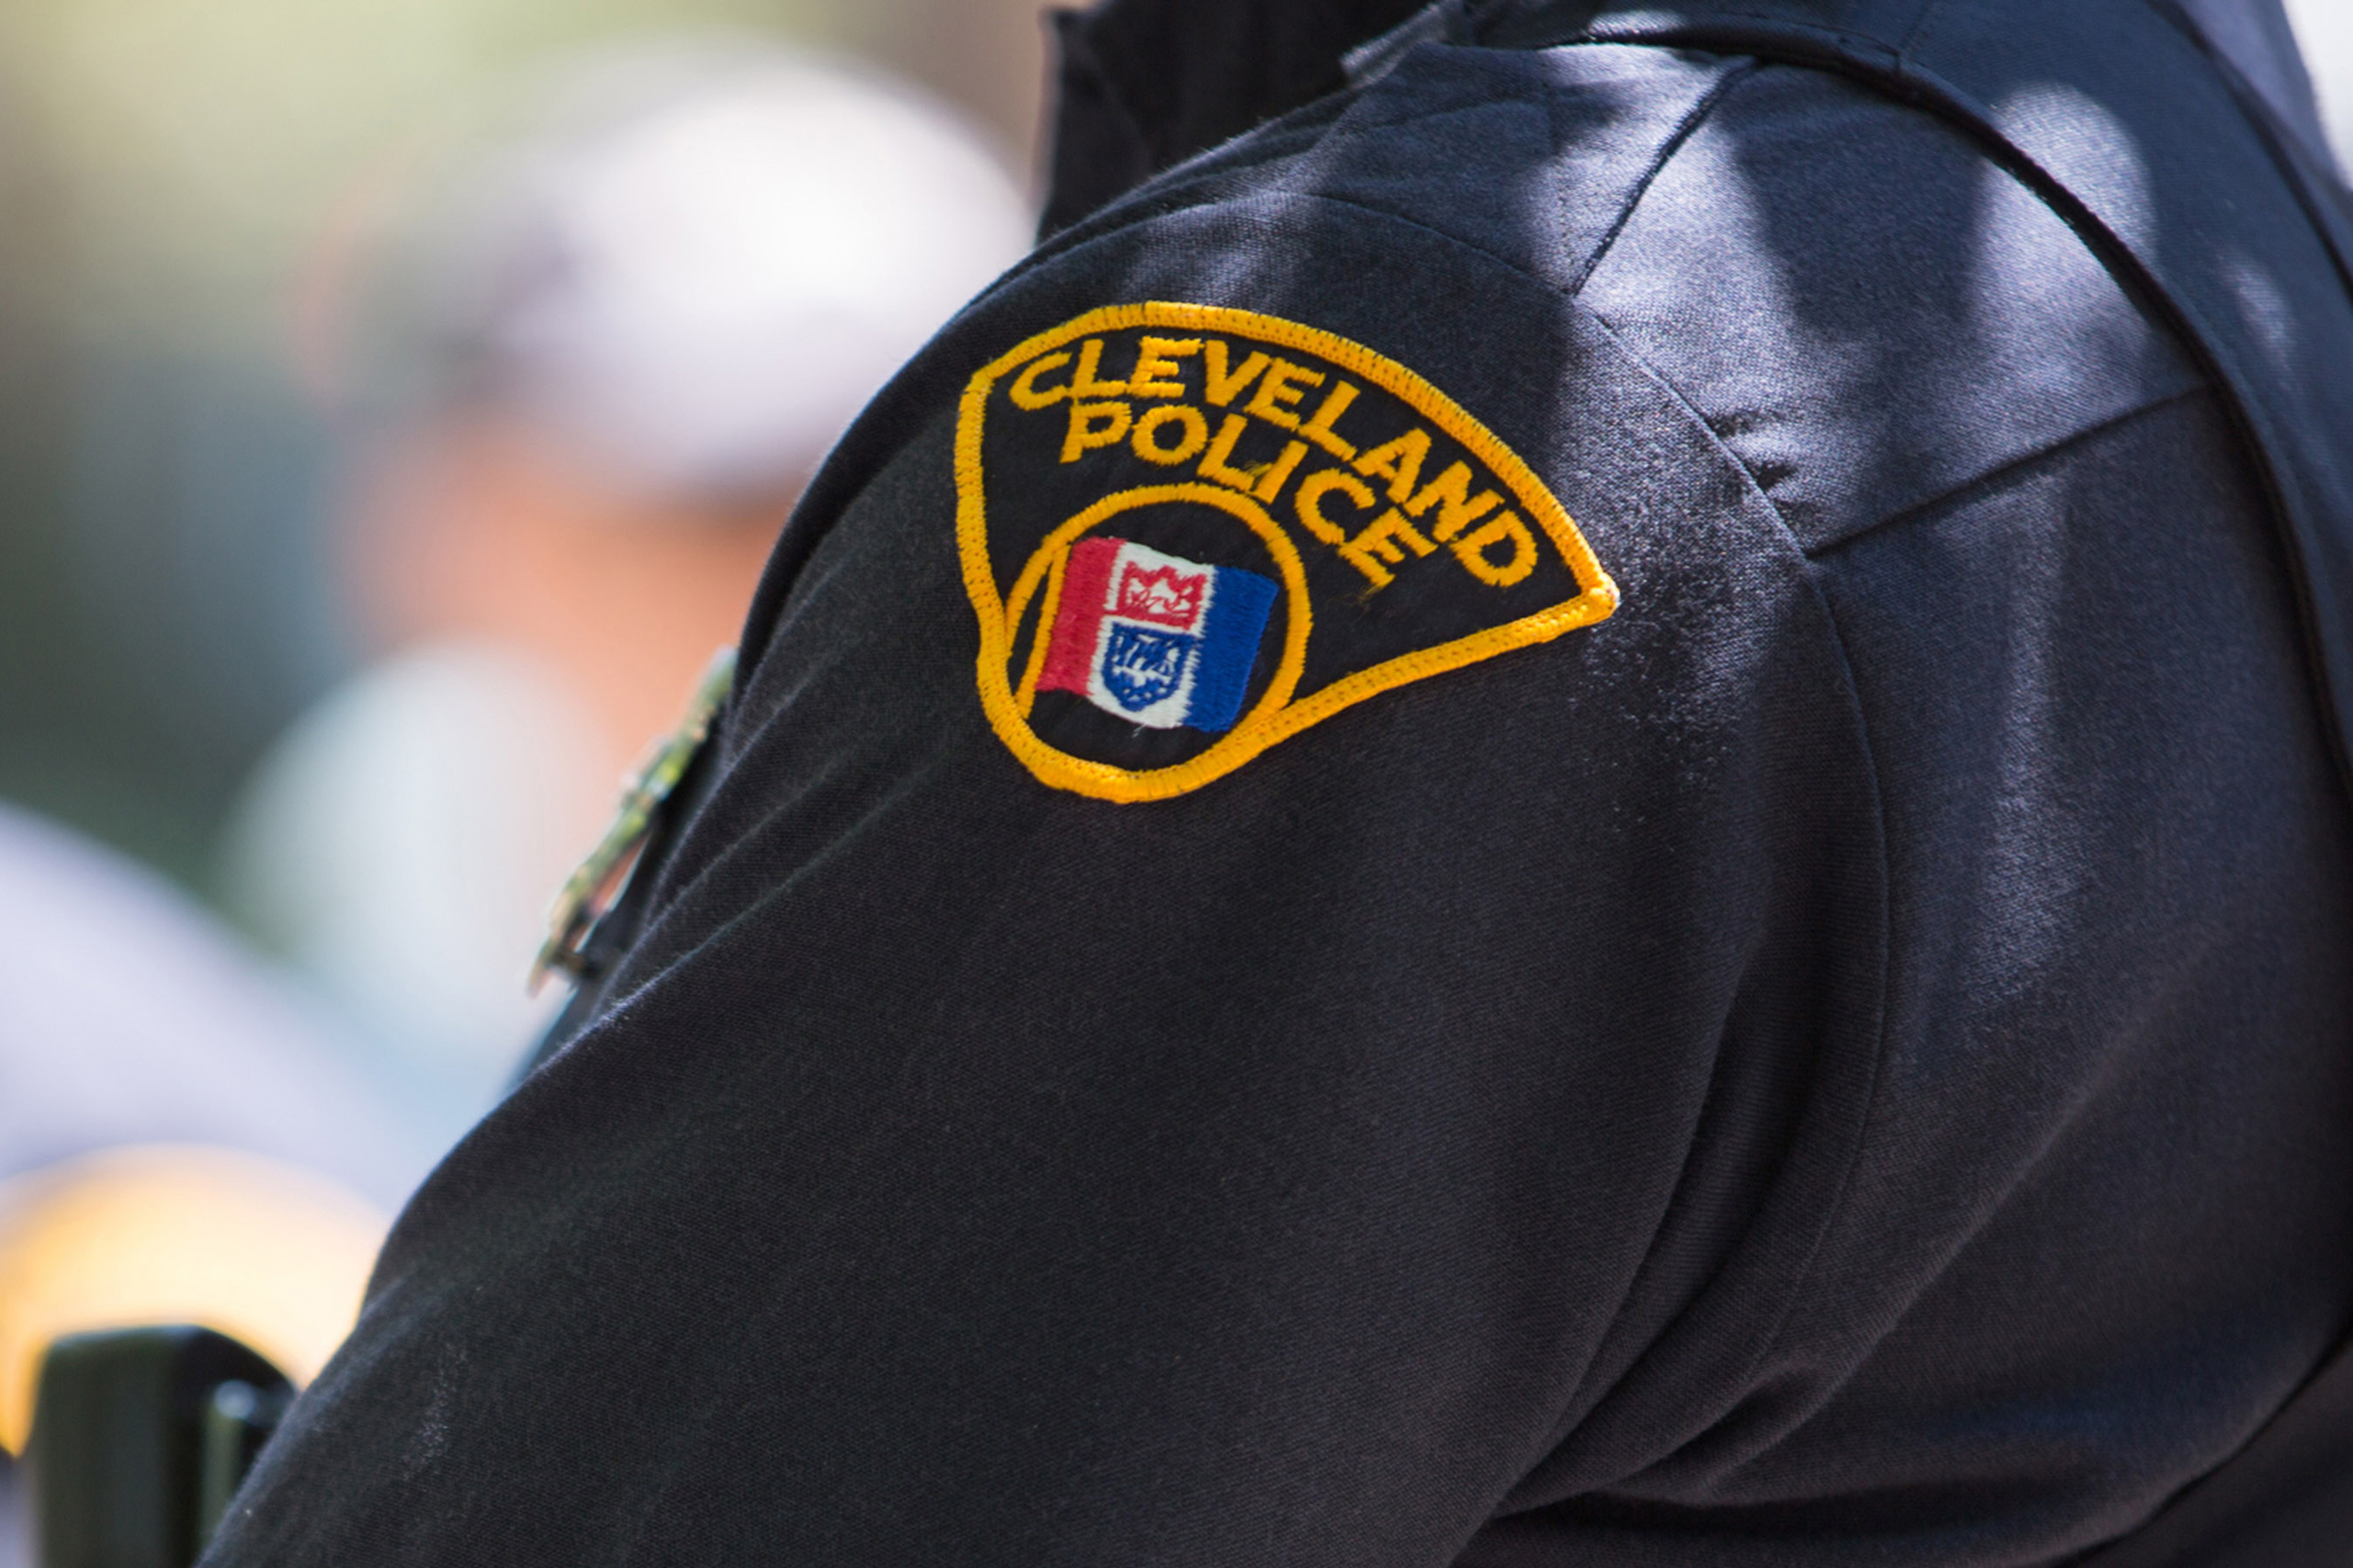 Cleveland sergeant accused of using police resources to contact 2,300 women